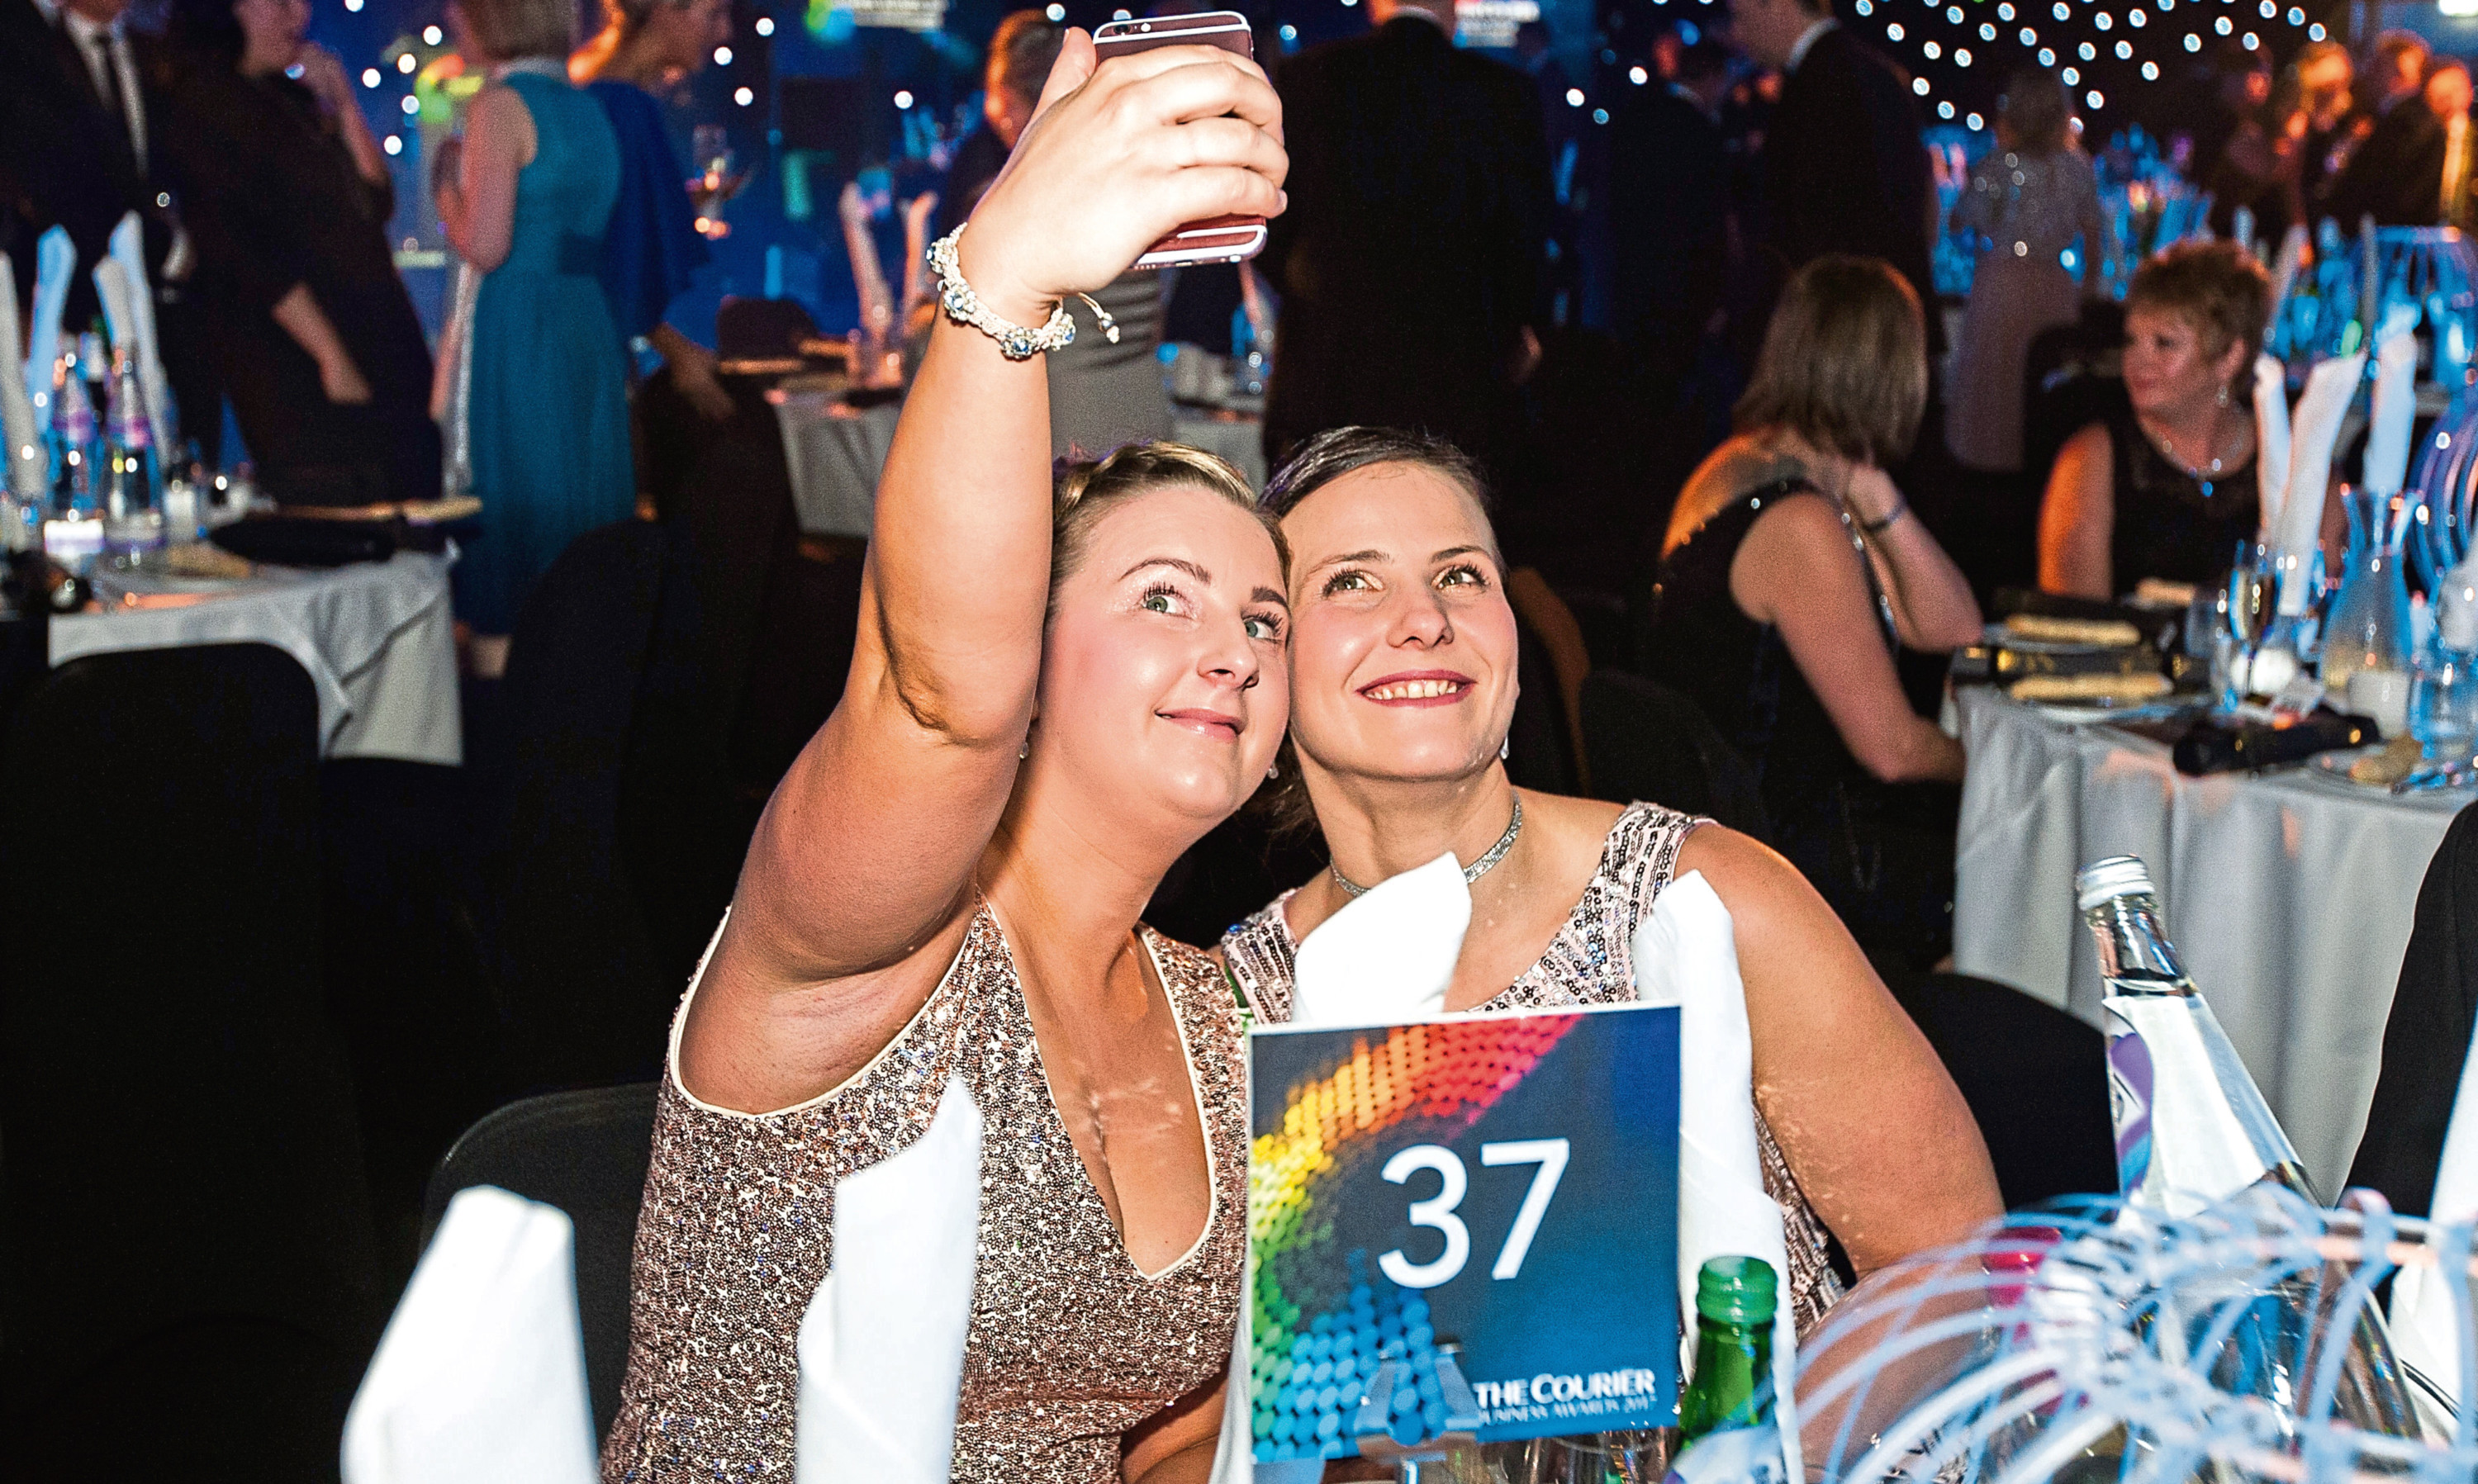 The Courier Business Awards 2018 will take place at Dundee's Apex City Quay hotel tonight.